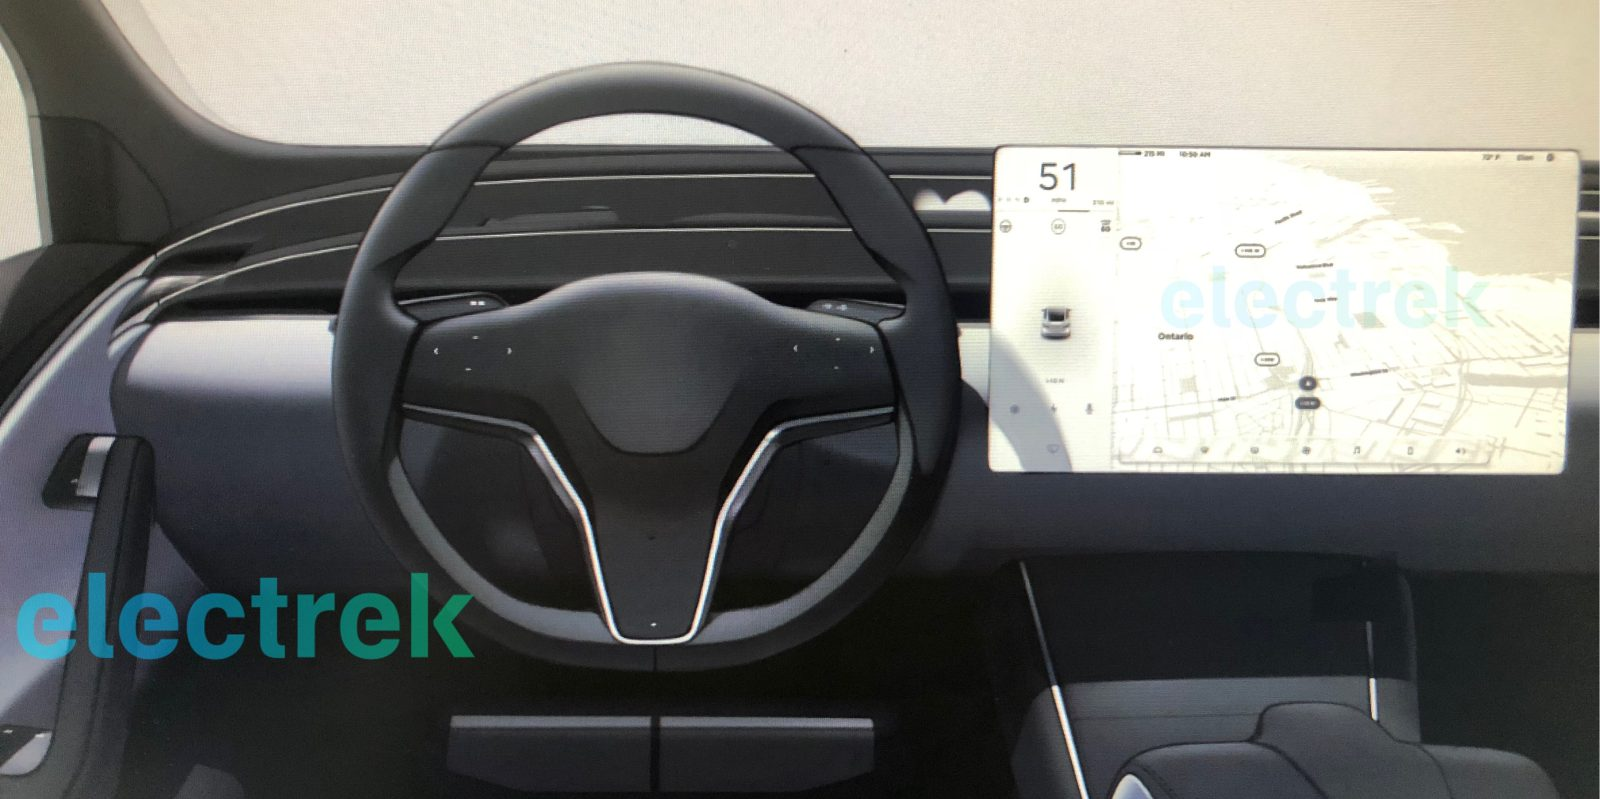 exclusive first look at tesla model s and model x interior refresh going spartan like model 3 [ 1600 x 799 Pixel ]